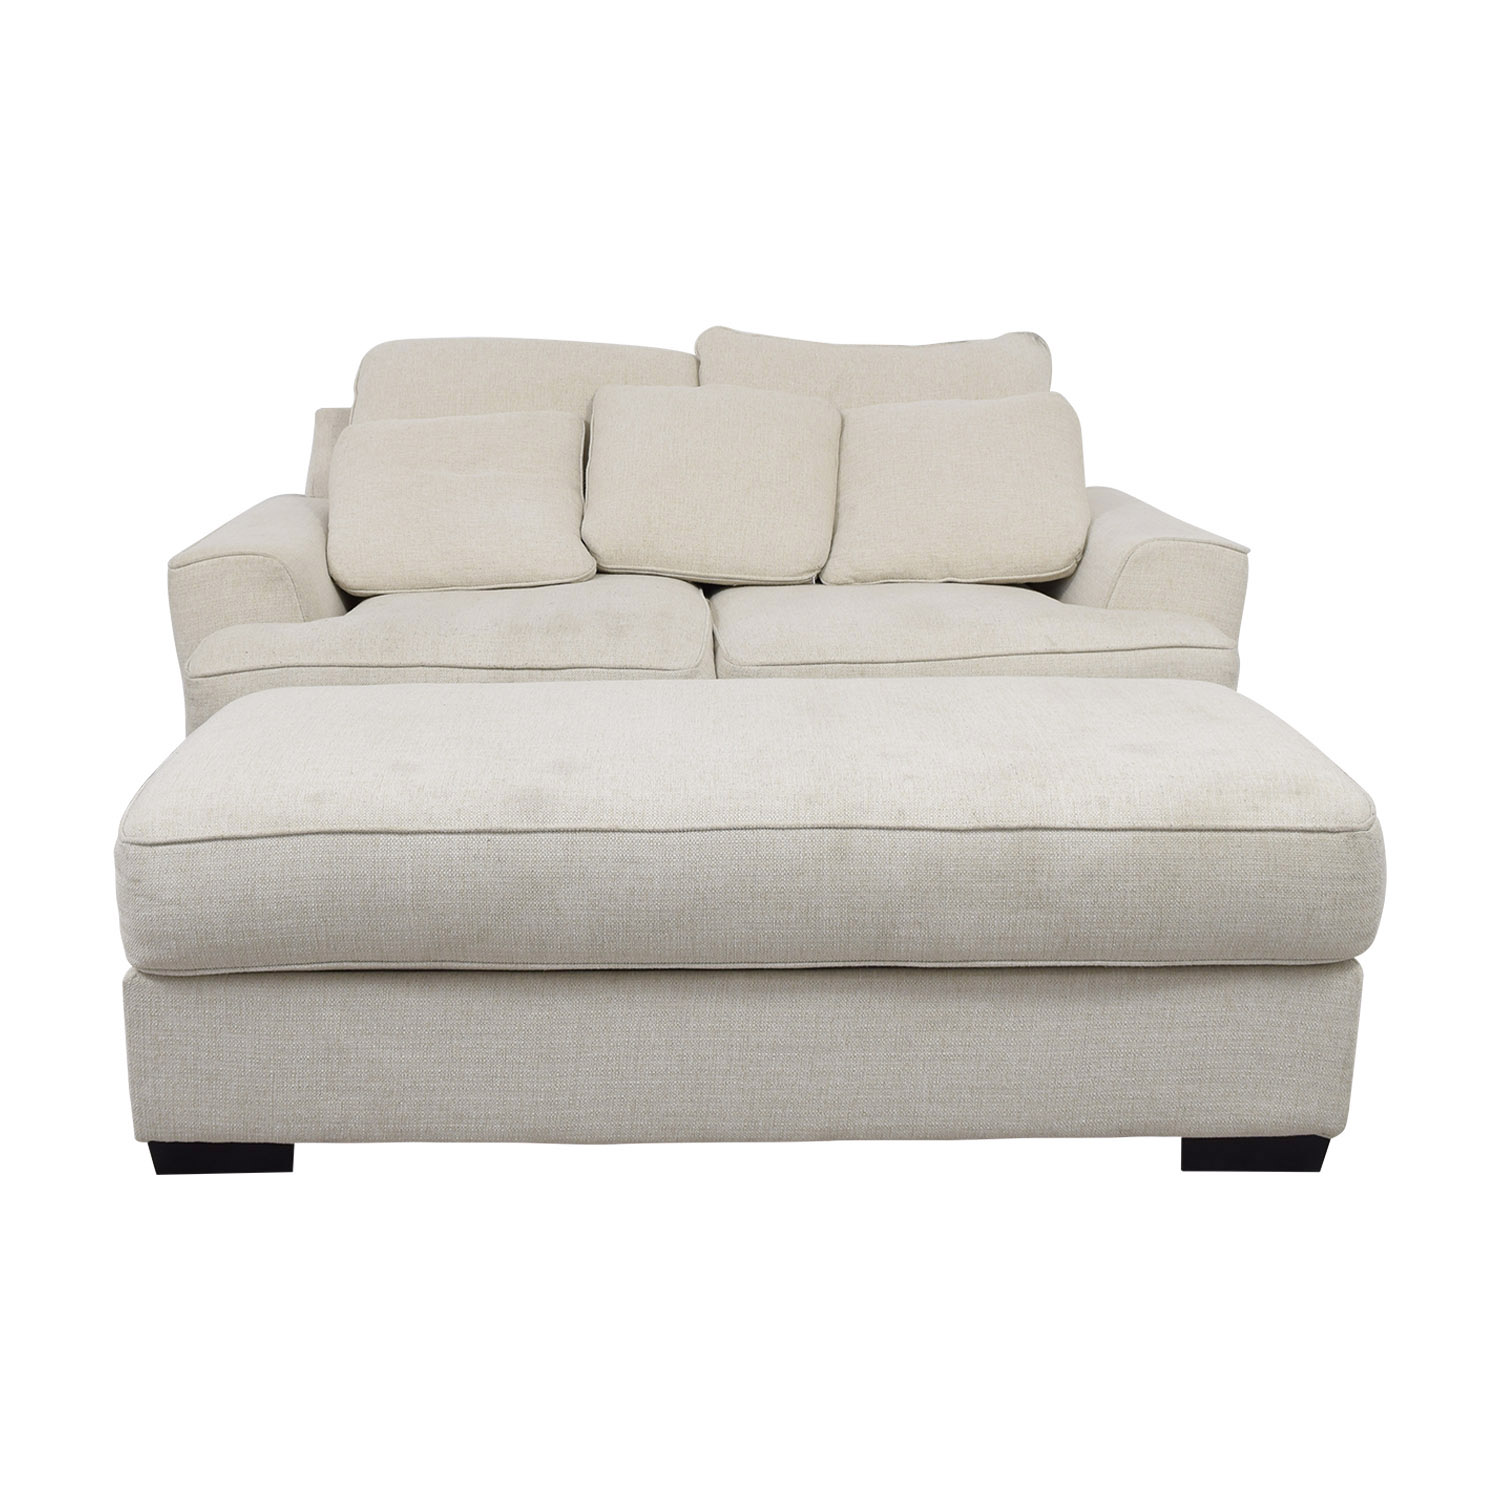 Macy's Ainsley Off White Loveseat and Ottoman Macy's